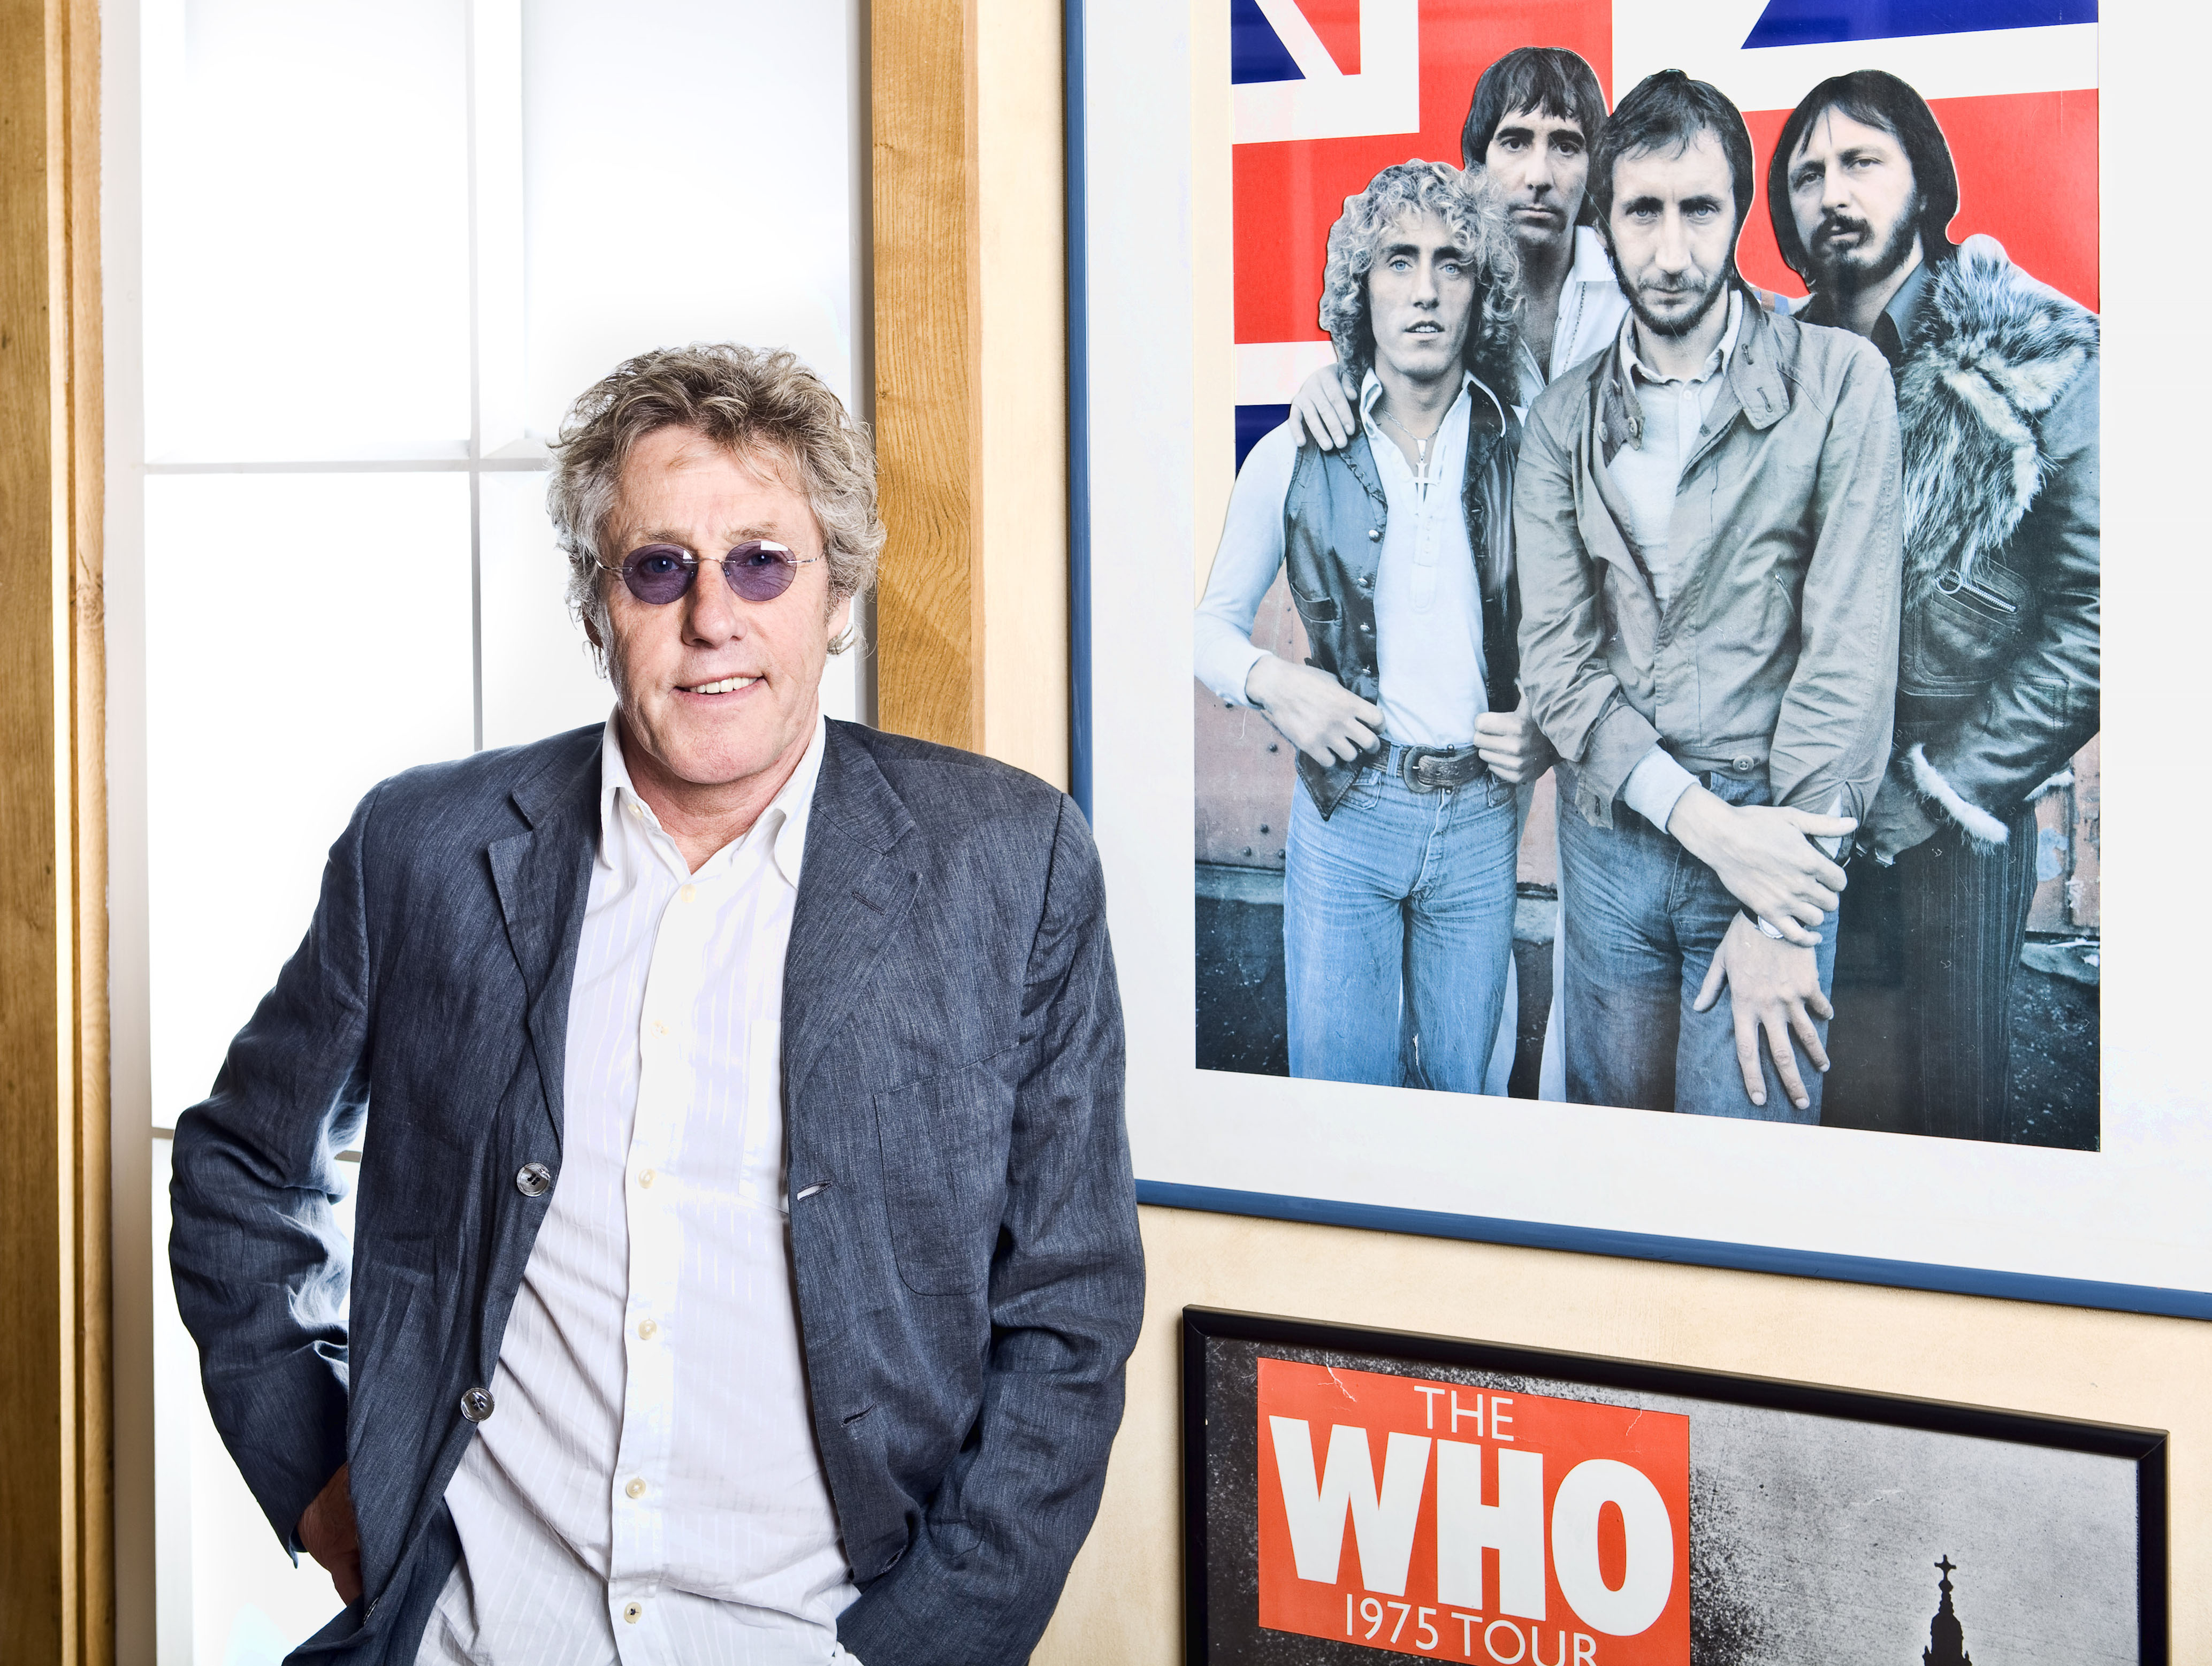 The Who's Roger Daltrey discusses the Teen Cancer America benefit concert,  performing with Eddie Vedder and wild Beatles fans.